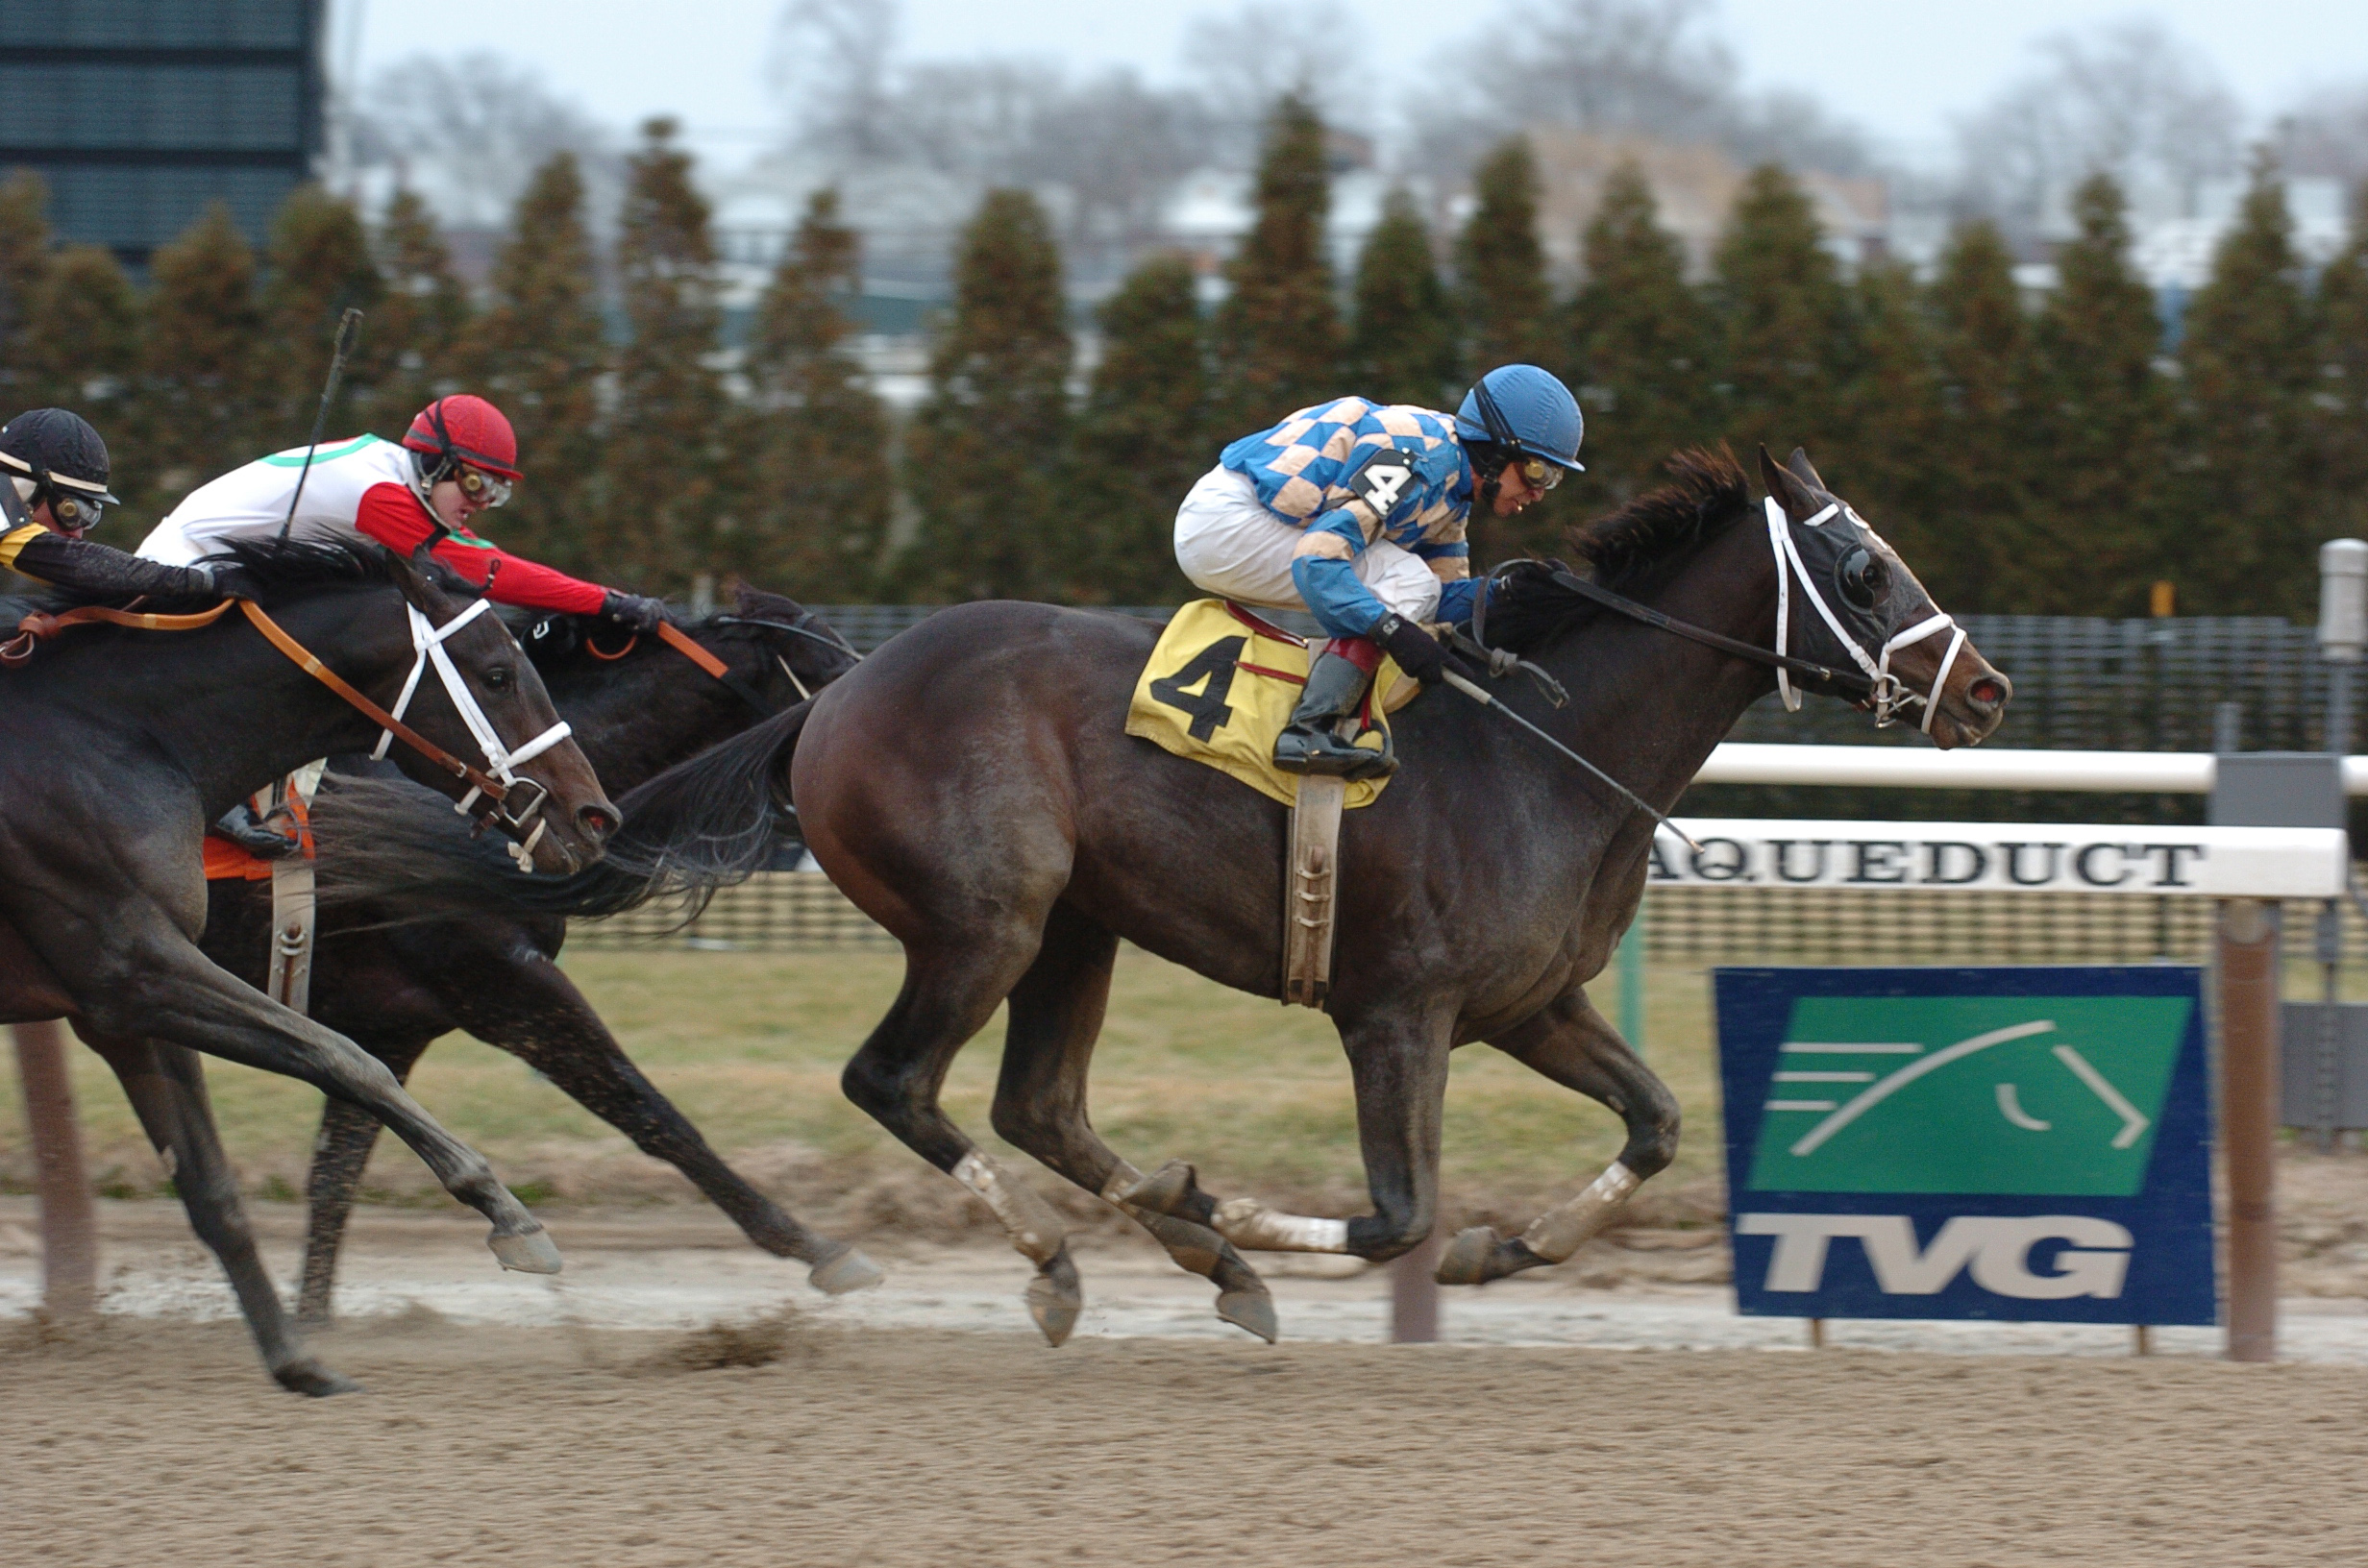 Greeley's Legacy at Aqueduct, December 31, 2005